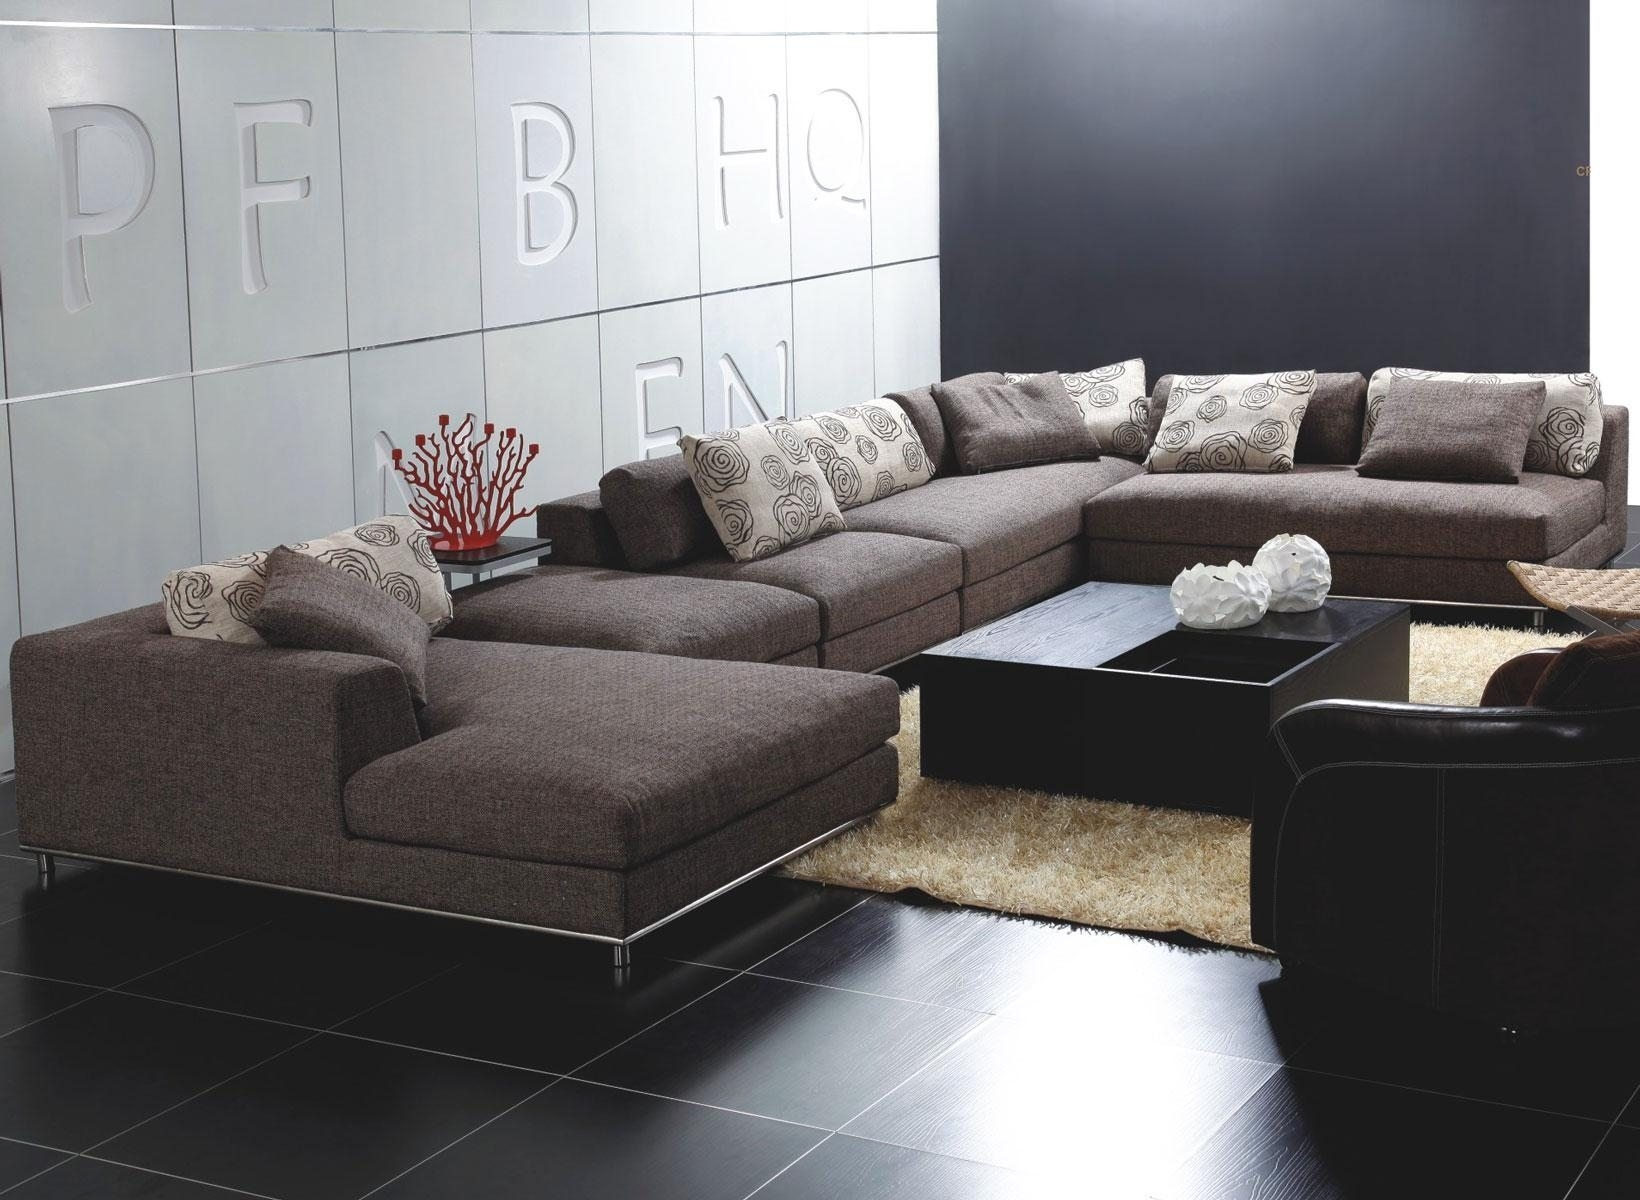 Berkline Sectional Sofa 43 With Berkline Sectional Sofa Bible Throughout Berkline Sectional Sofa (Image 4 of 15)